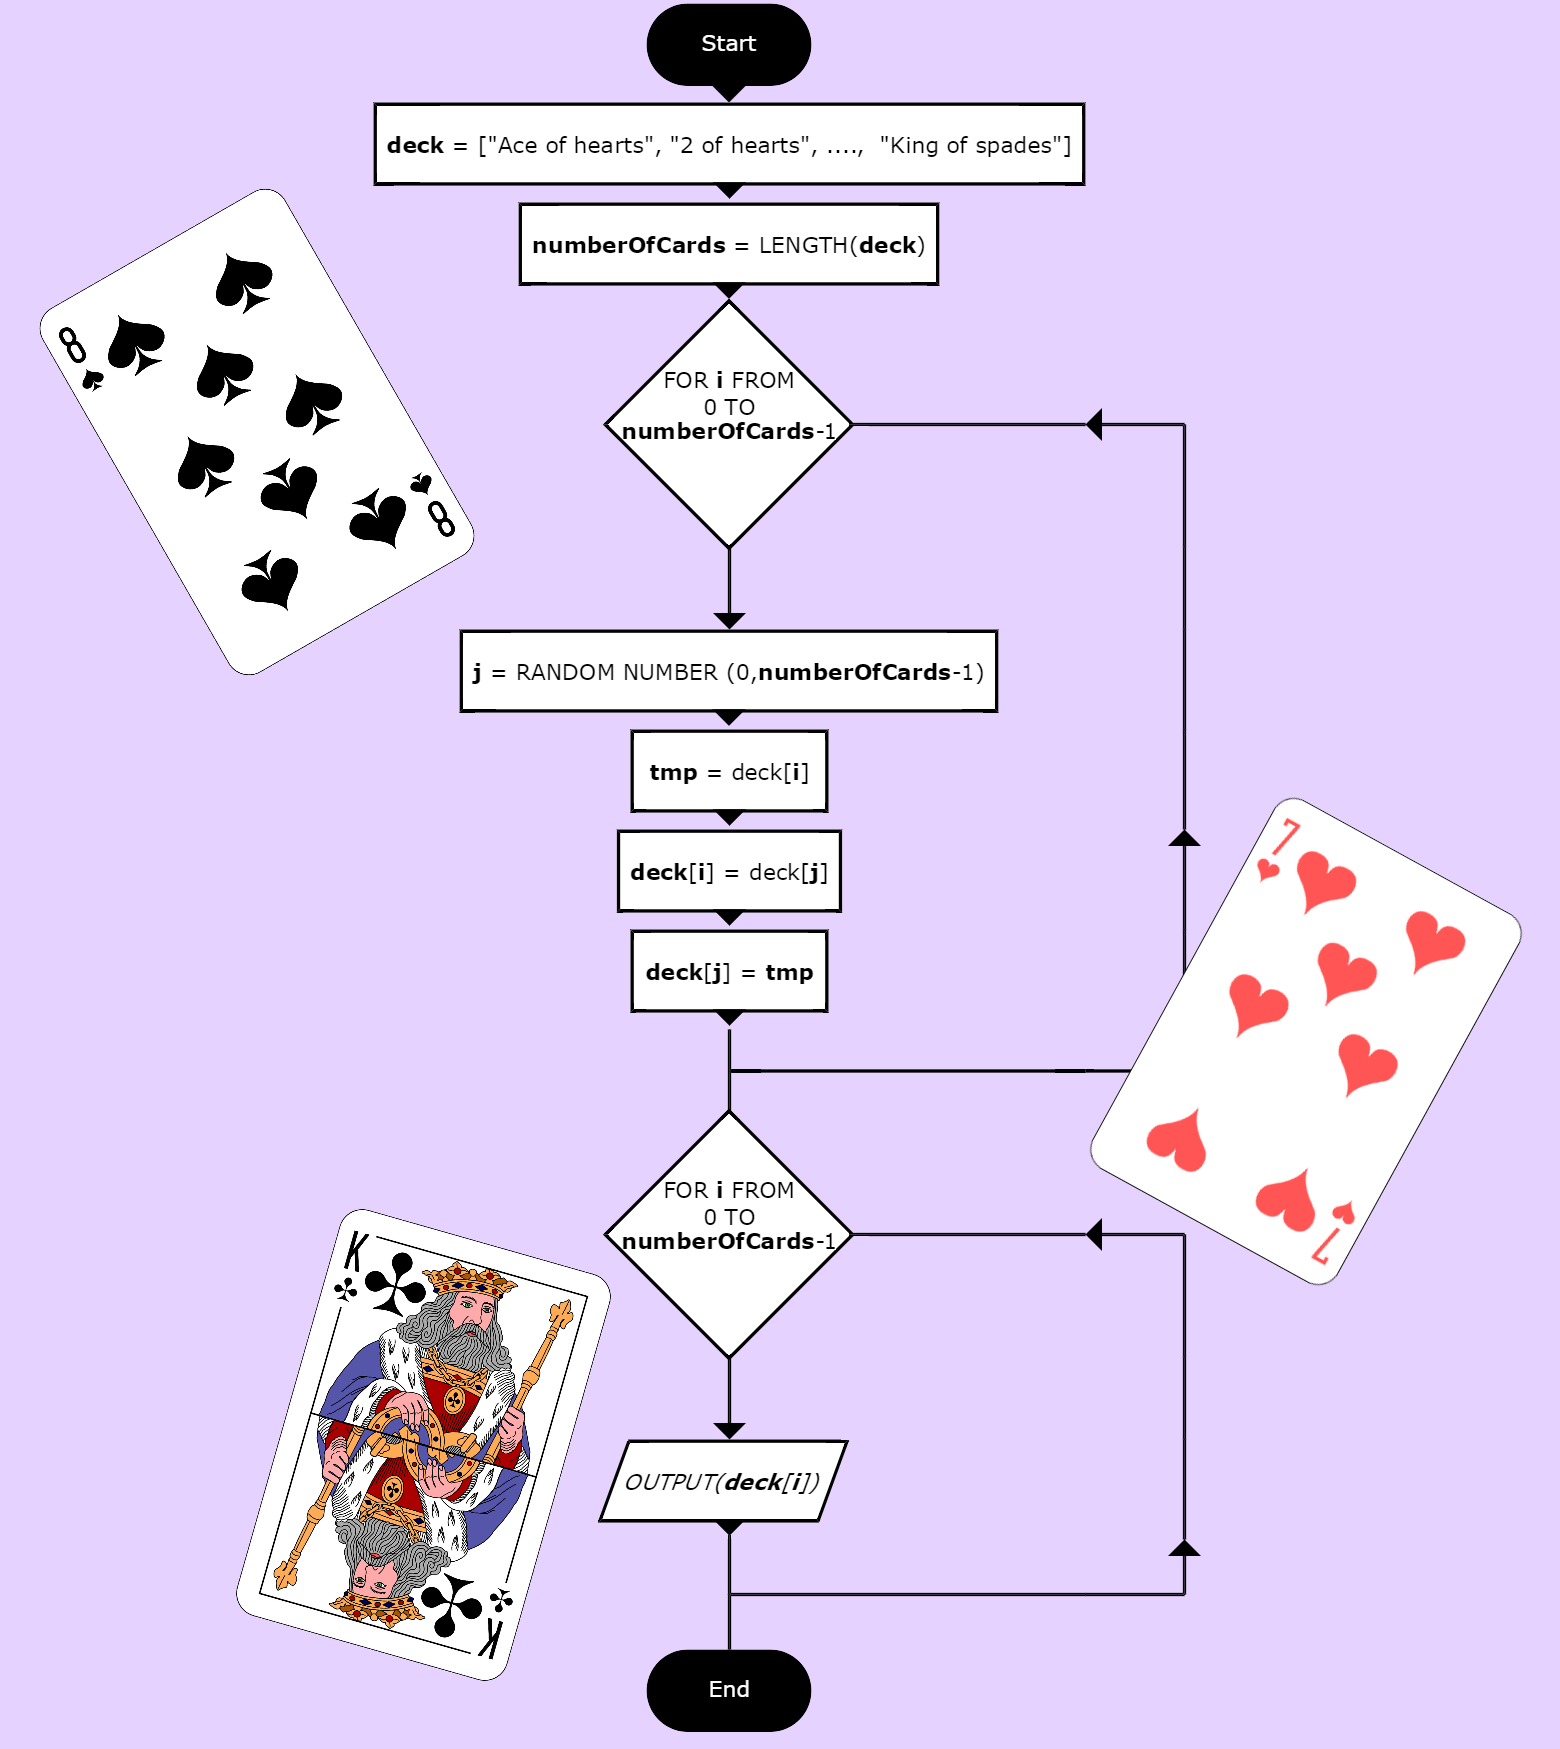 flowchart-shuffling-deck-of-cards